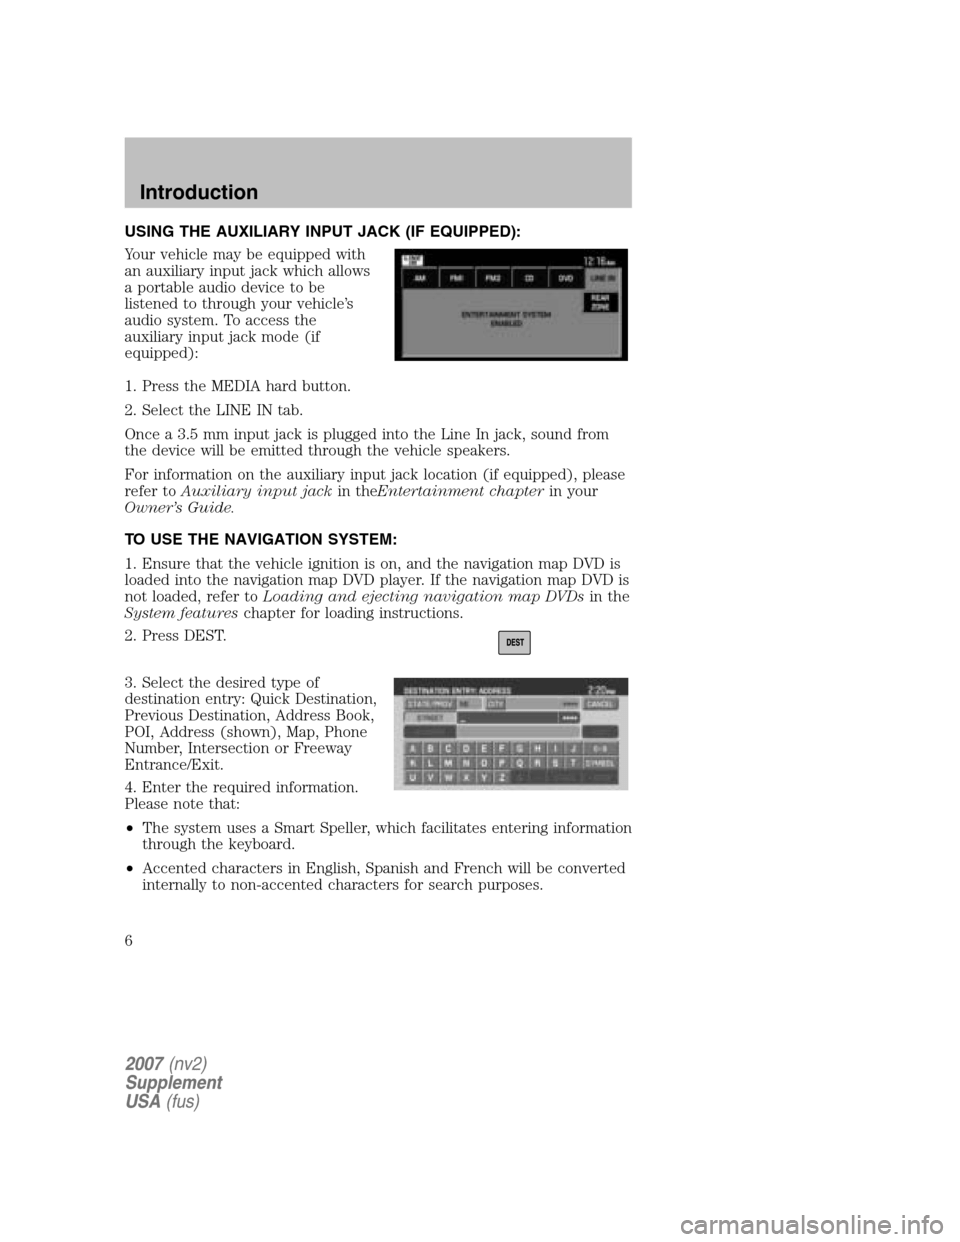 LINCOLN NAVIGATOR 2007 Navigation Manual